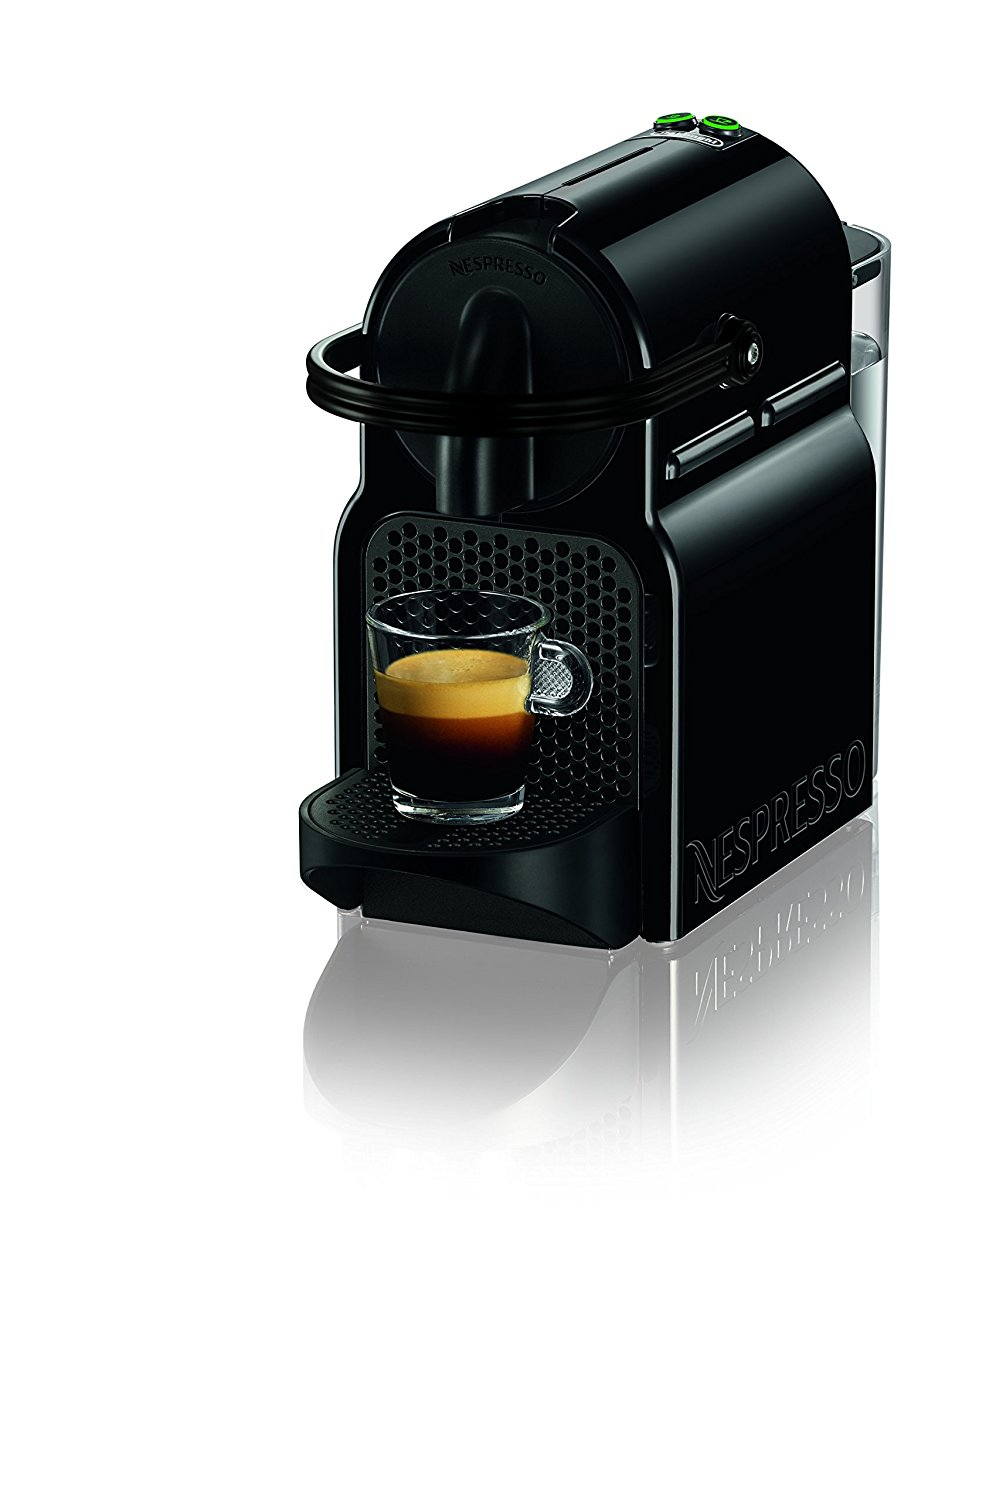 Nespresso-Inssia-Original-coffee-maker